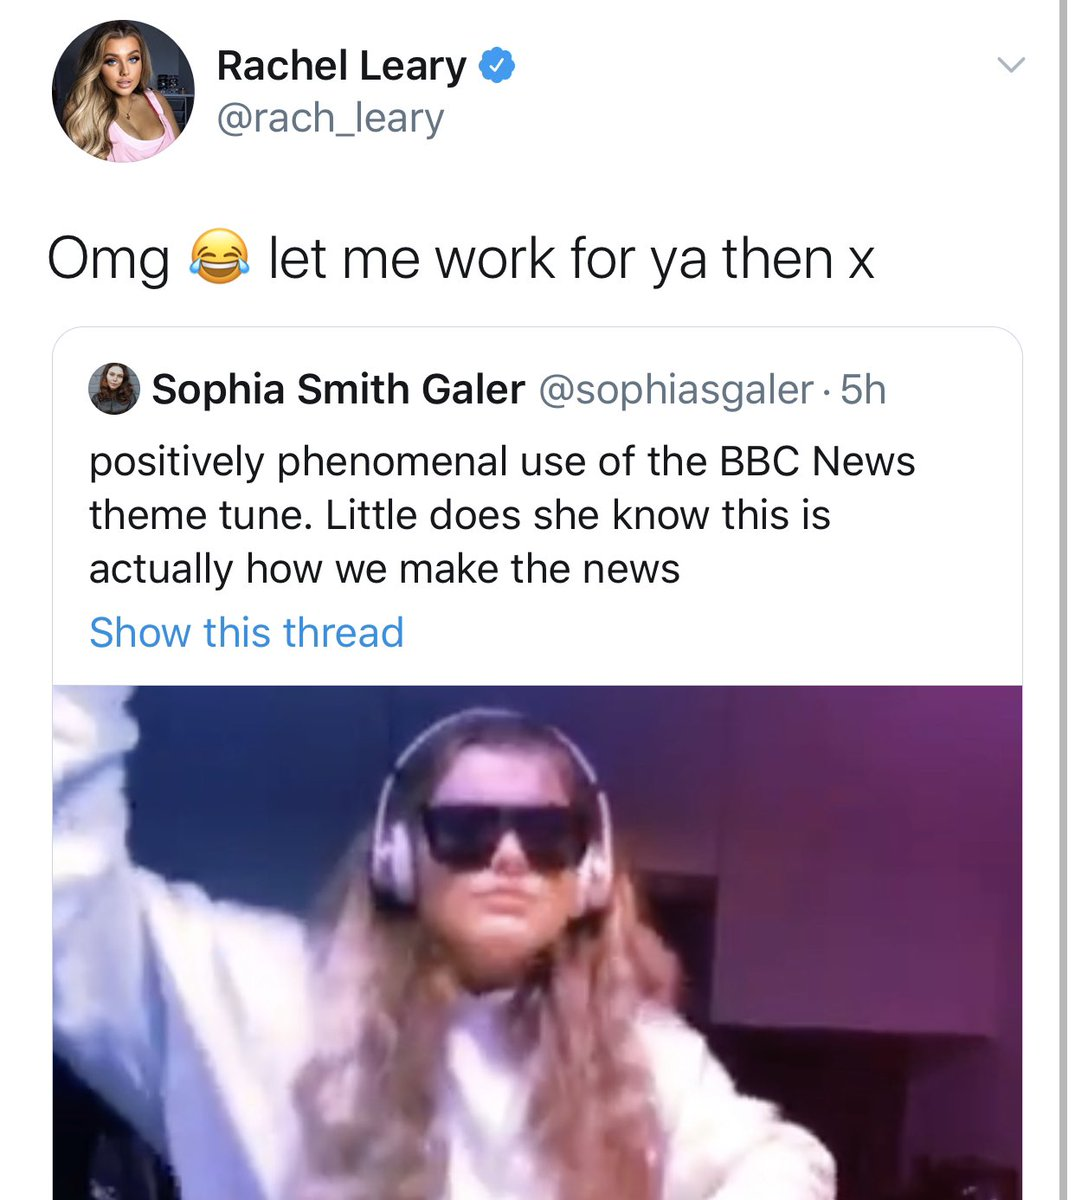 Sophia Smith Galer On Twitter Positively Phenomenal Use Of The Bbc News Theme Tune Little Does She Know This Is Actually How We Make The News